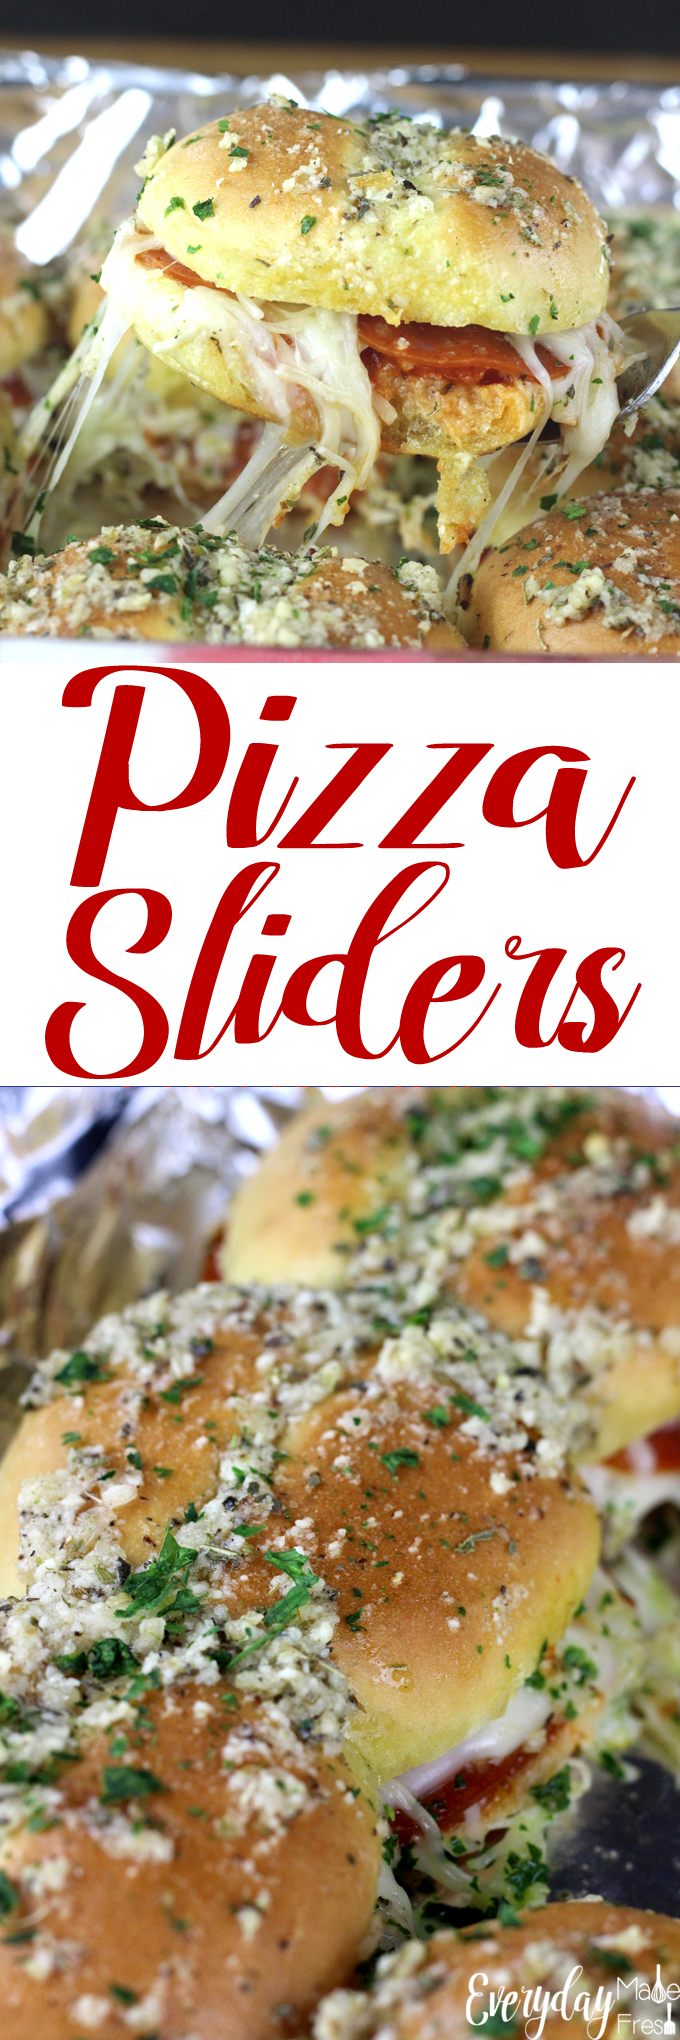 Sliders are popular for all sorts of reasons, and their small size make them fun for parties, get together, and holidays.  These Pizza Sliders are cheesy and totally customizable, and loved by all! | EverydayMadeFresh.com